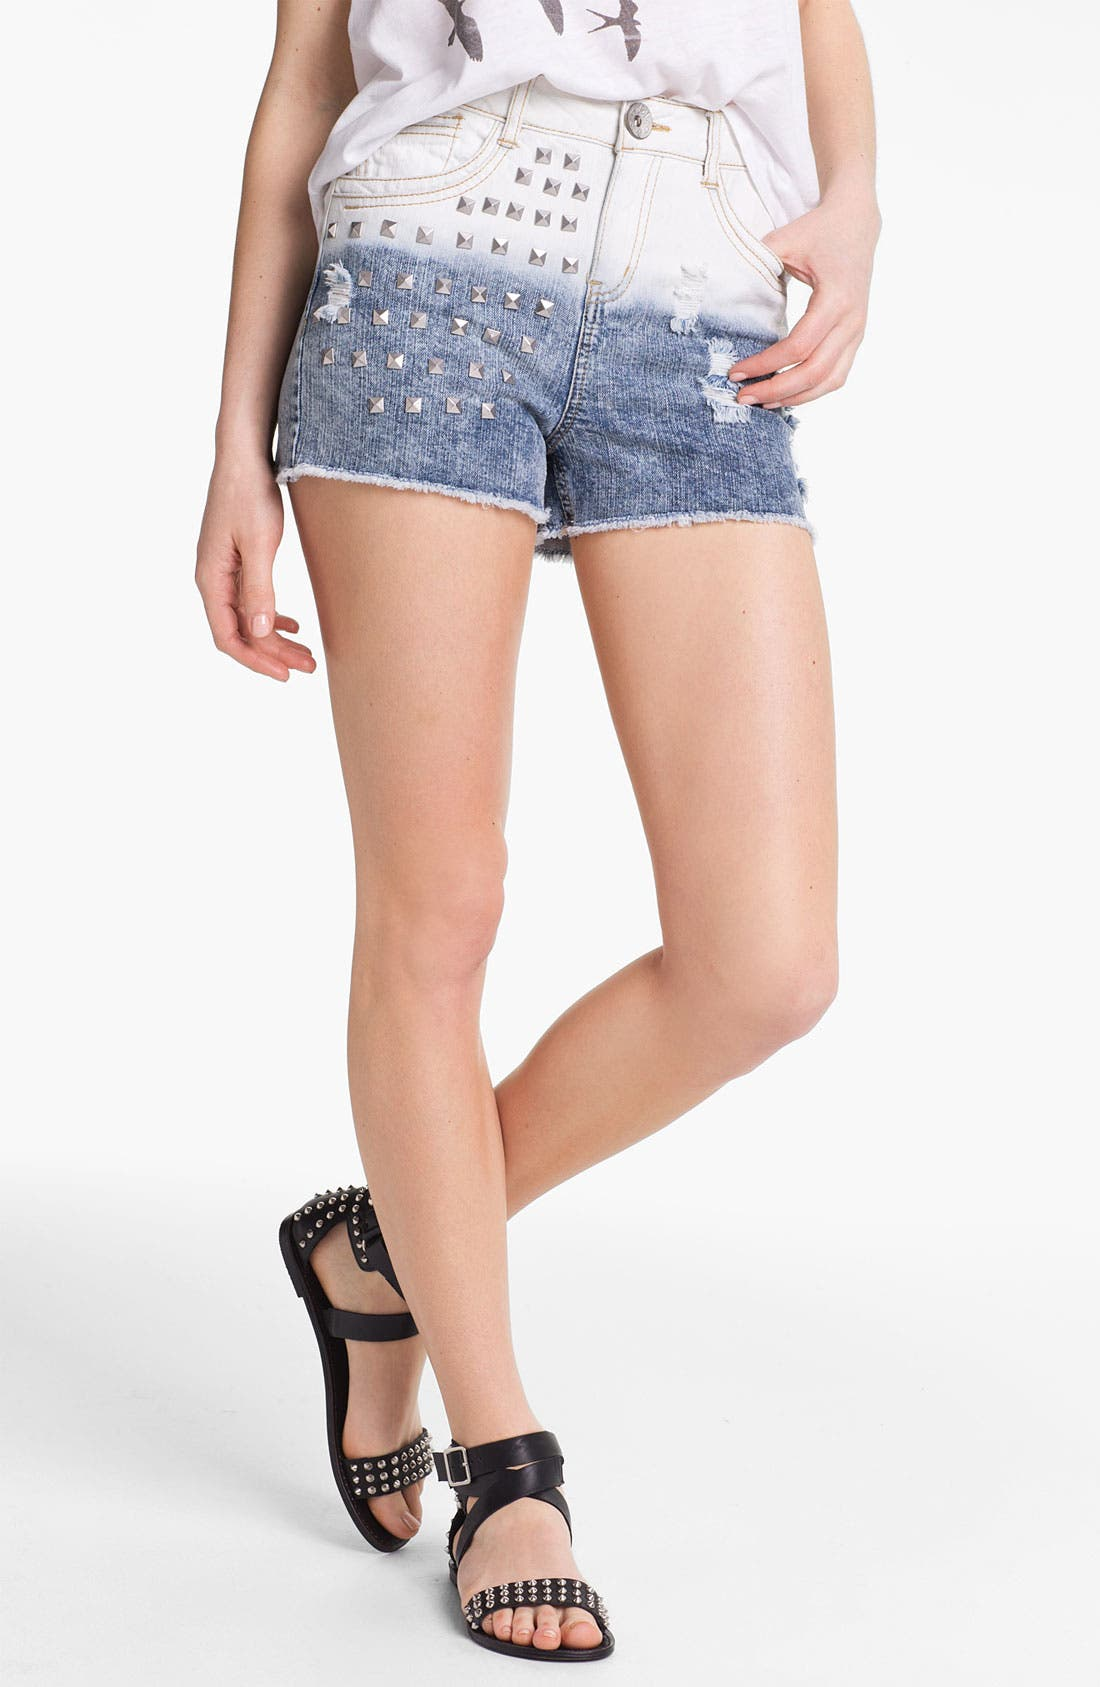 Alternate Image 1 Selected - Jolt Stud Dip Dye High Waist Denim Shorts (Juniors)